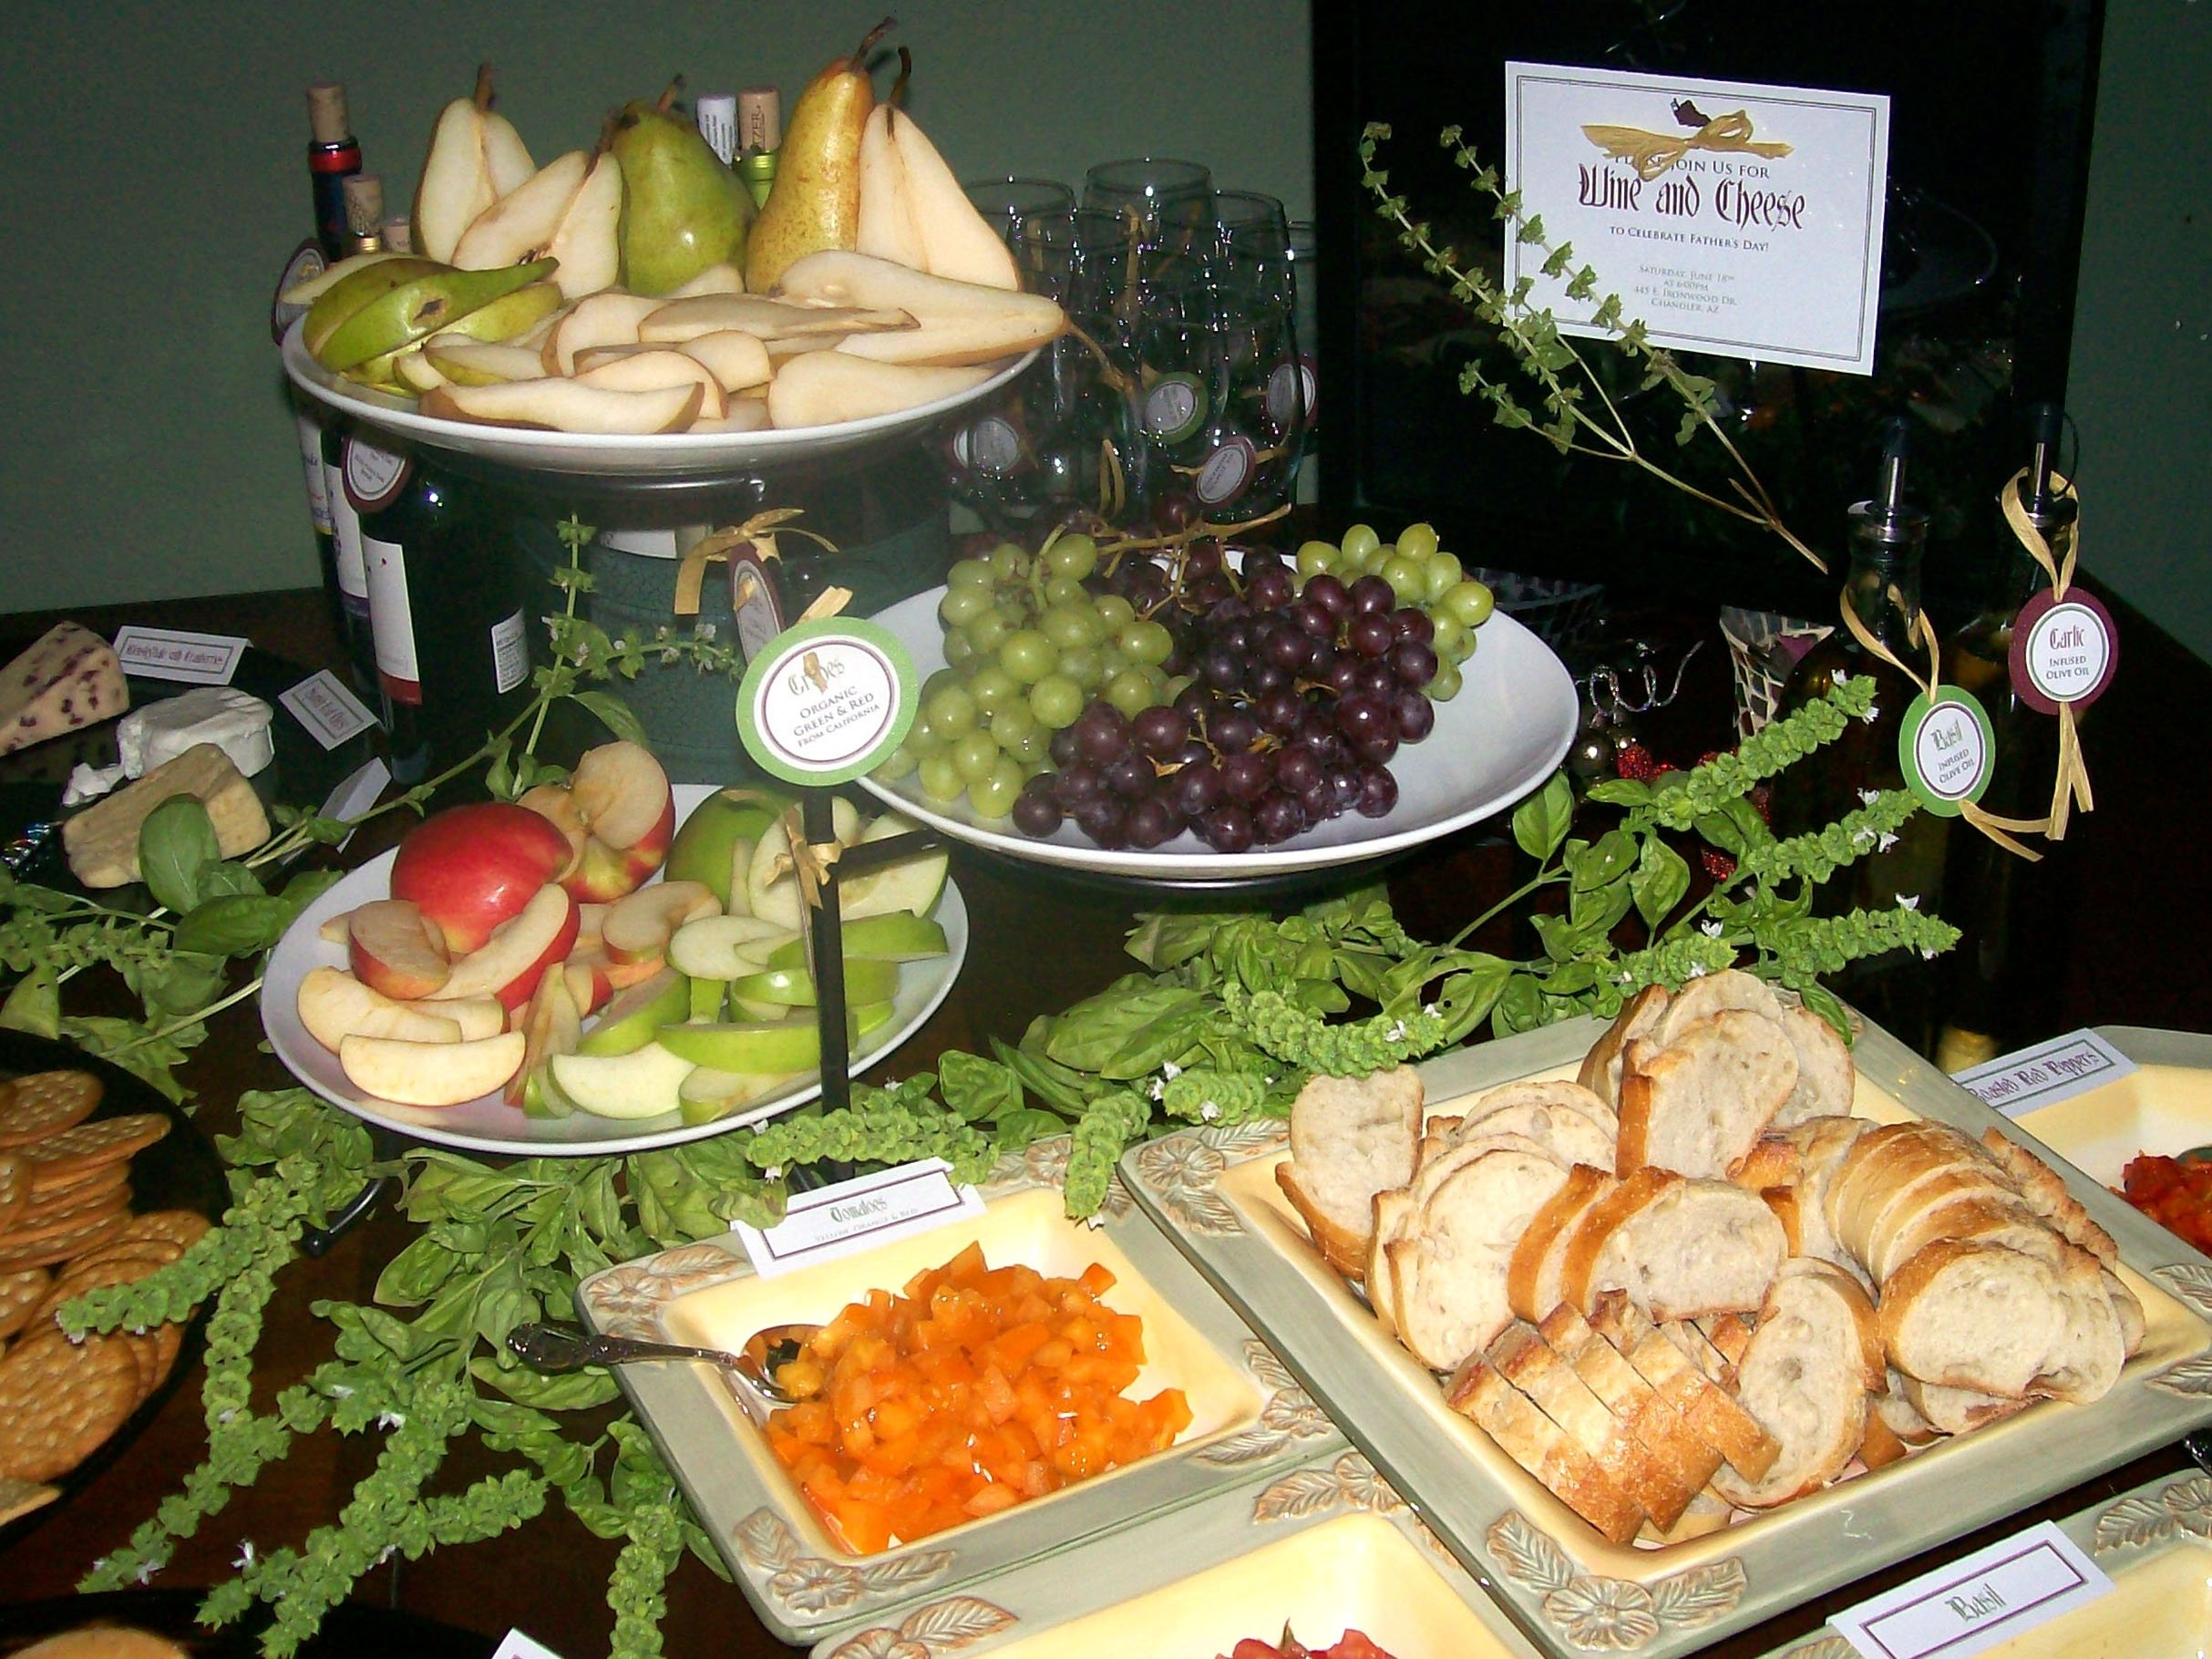 10 Attractive Wine And Cheese Party Ideas wine cheese party for fathers day elizabethkaydesign 2021